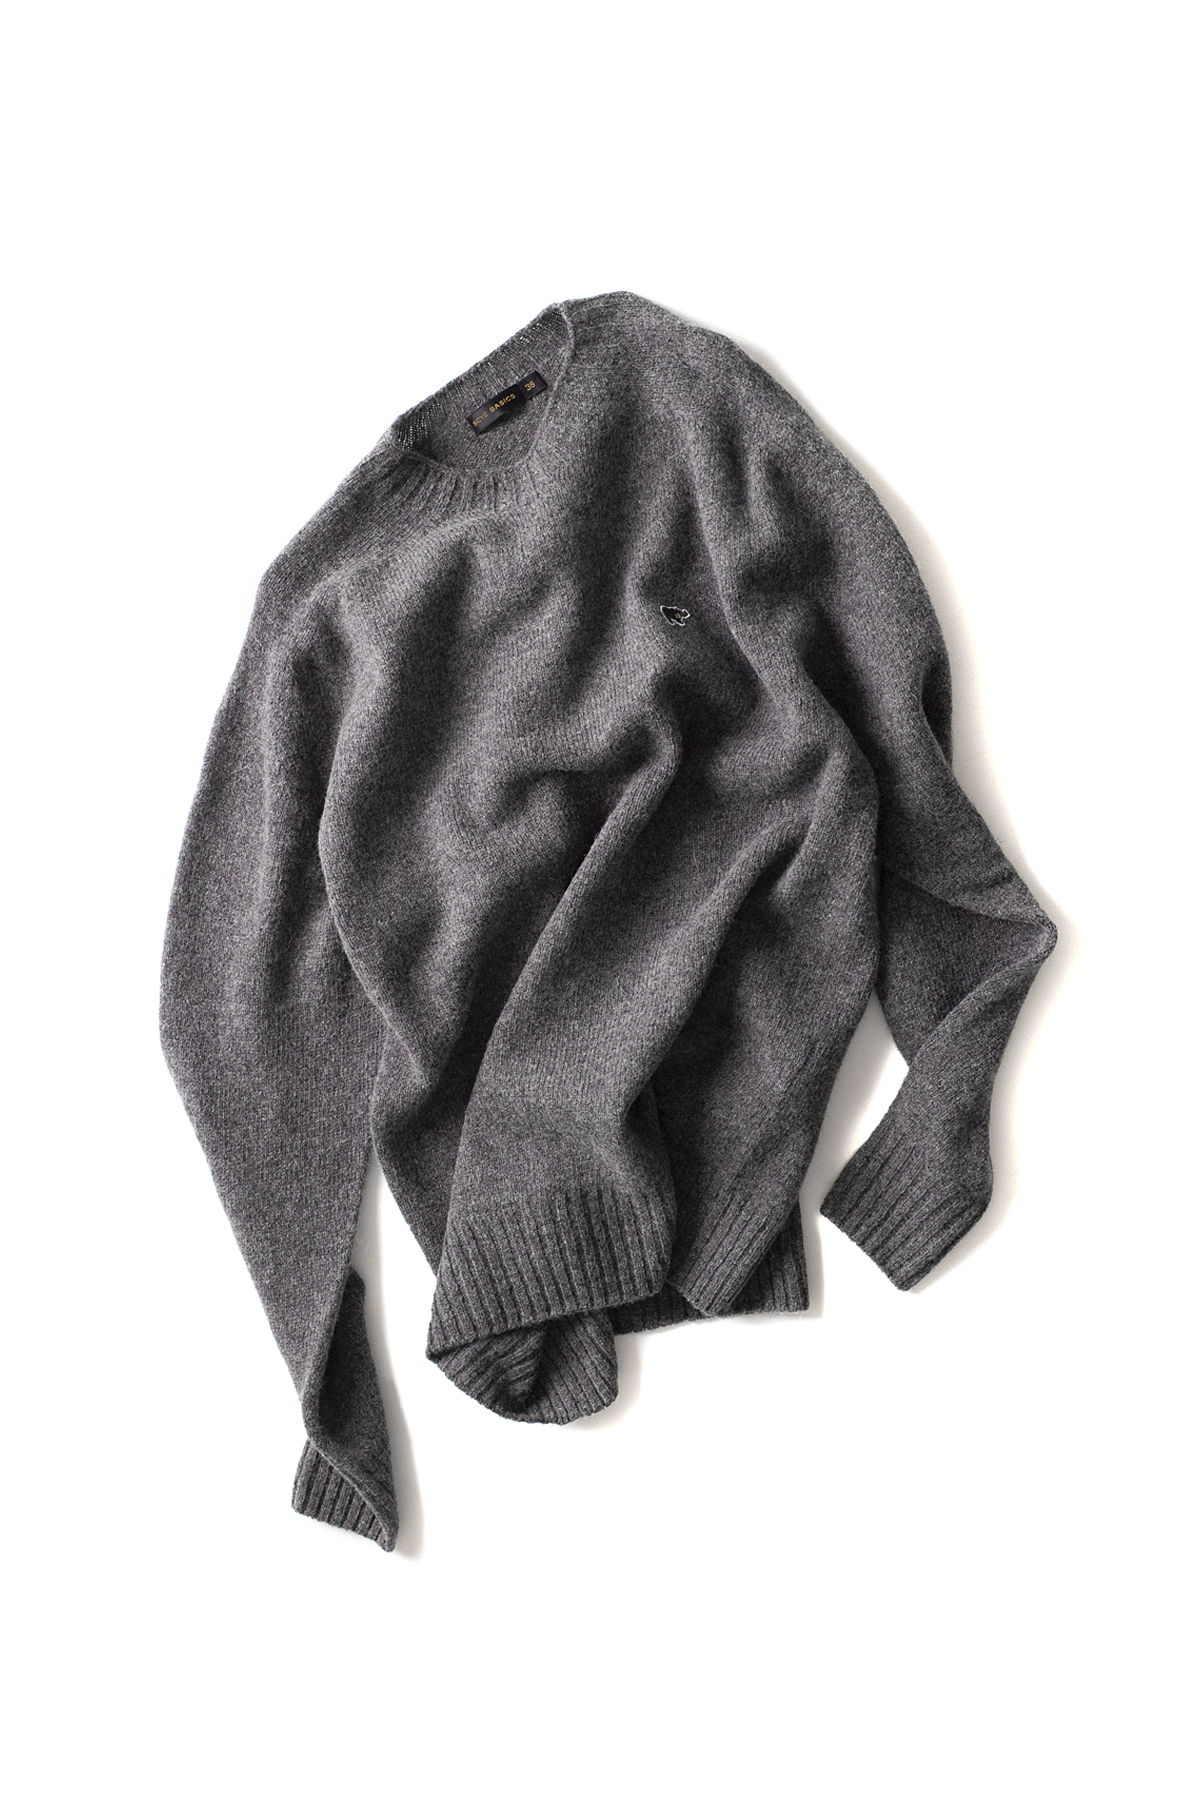 Scye Basics : Shetland Wool Whole Garment Knit Sweater (Grey)